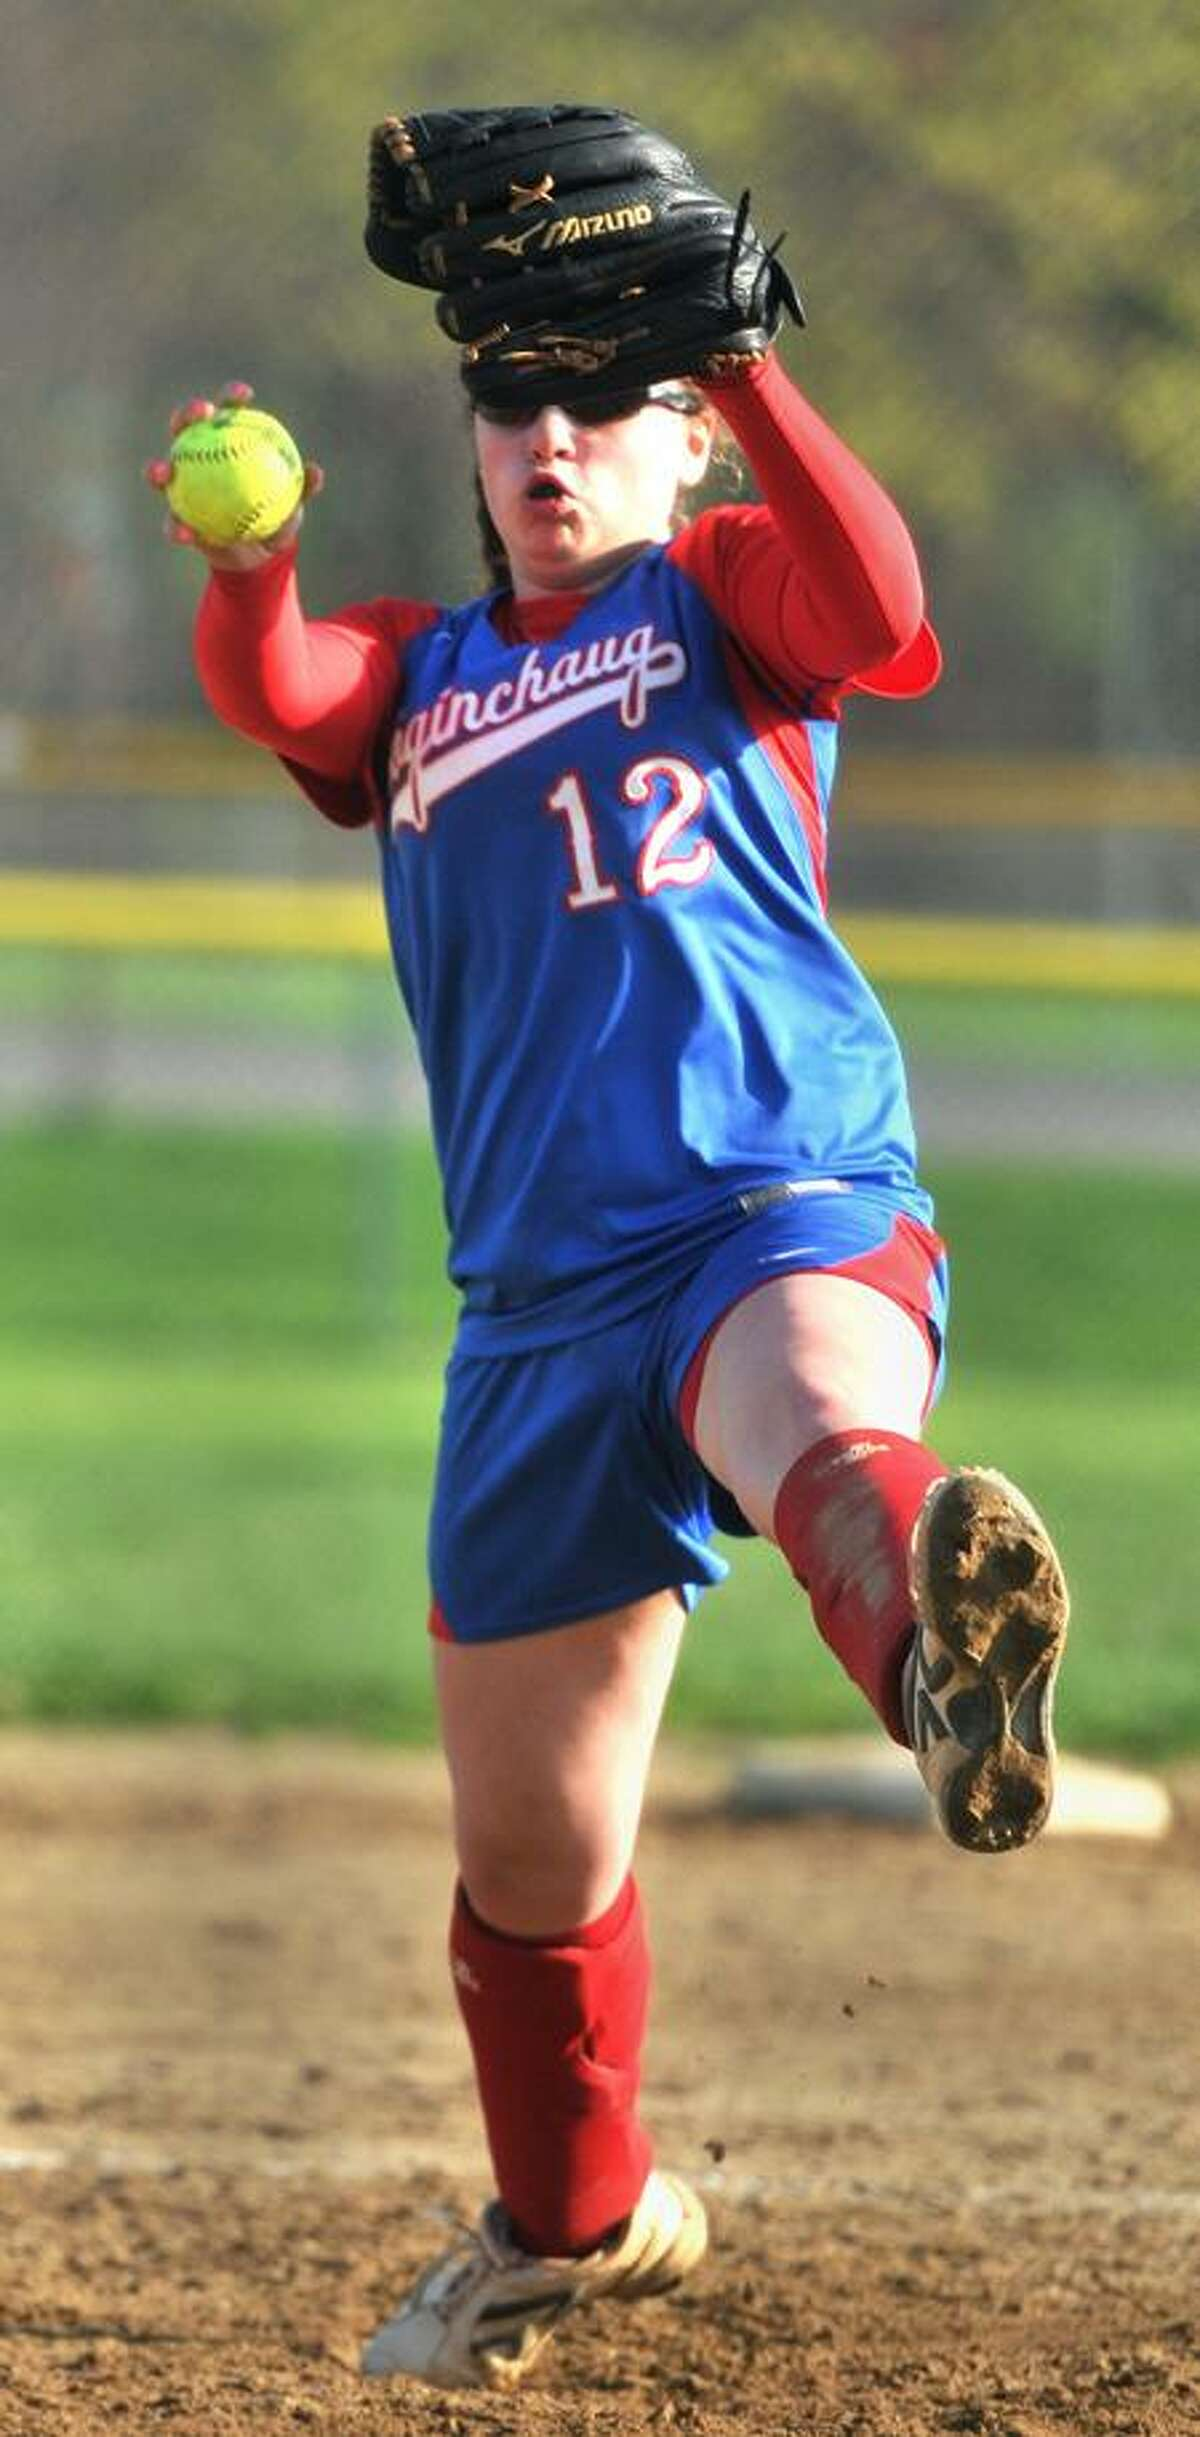 Coginchaug's Mari Handley gets ready to pitch against Old Lyme Monday. Photo by Brad Horrigan/New Haven Register.